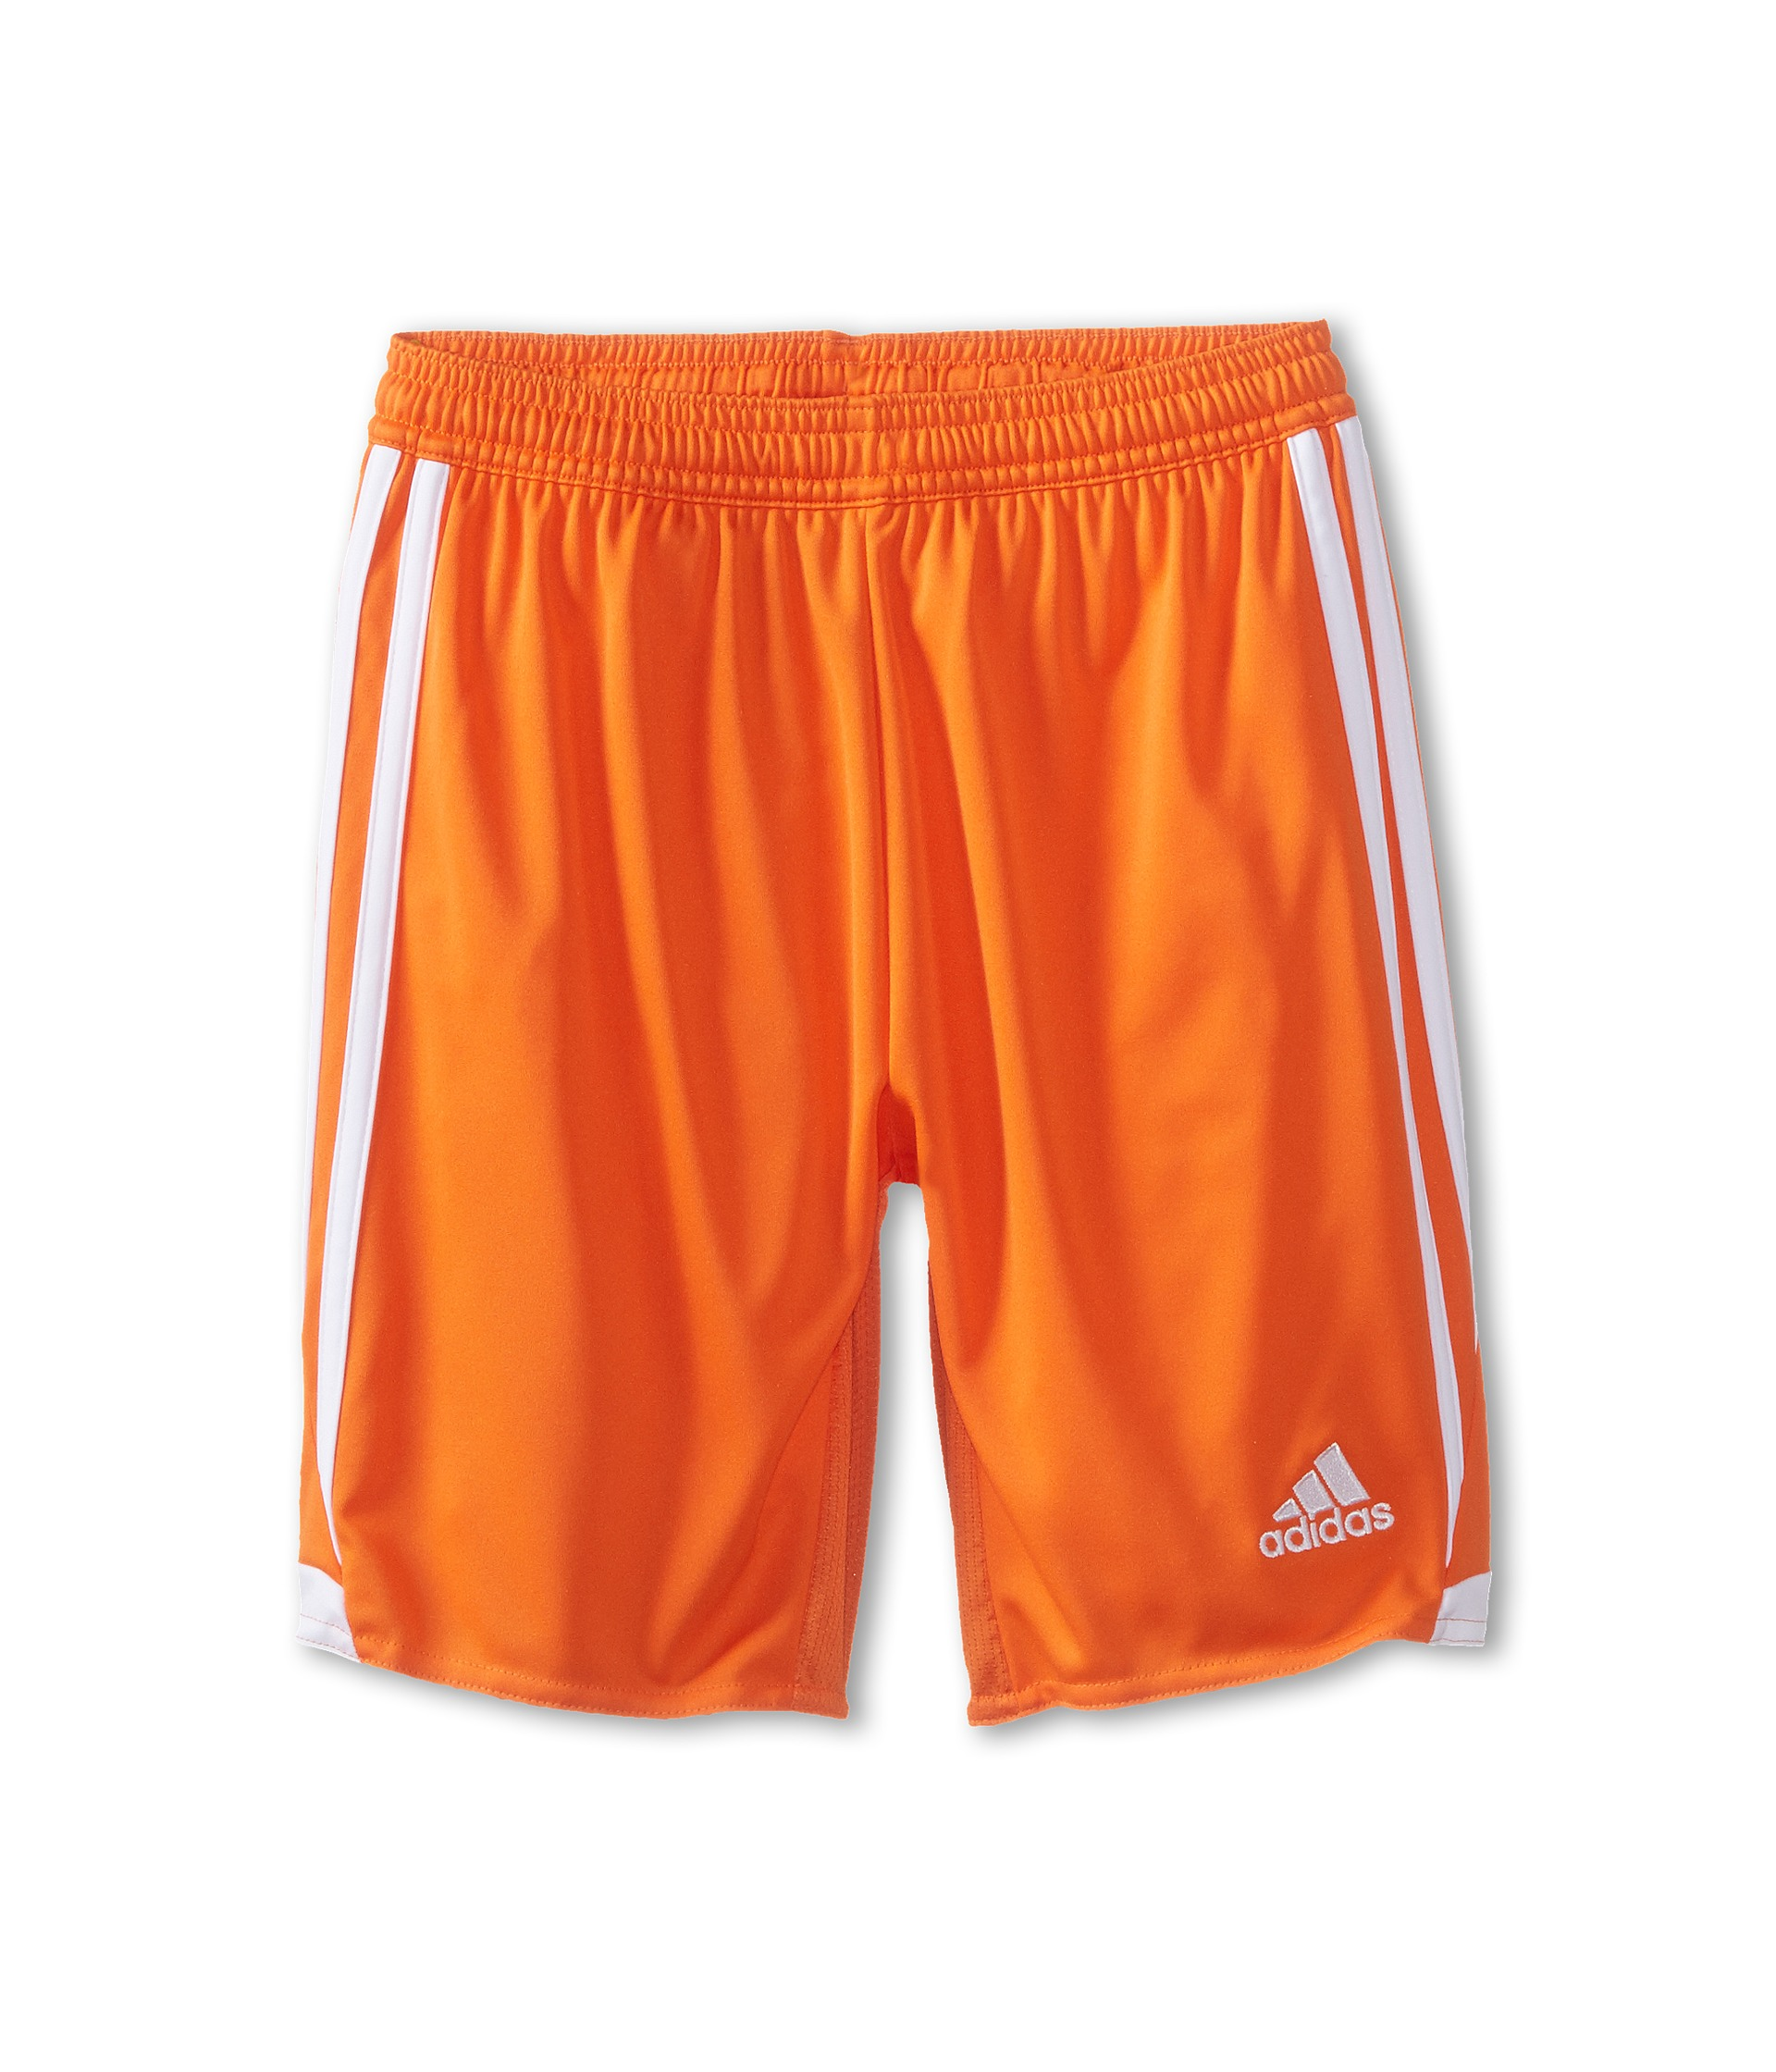 Shop for orange shorts online at Target. Free shipping on purchases over $35 and save 5% every day with your Target REDcard.